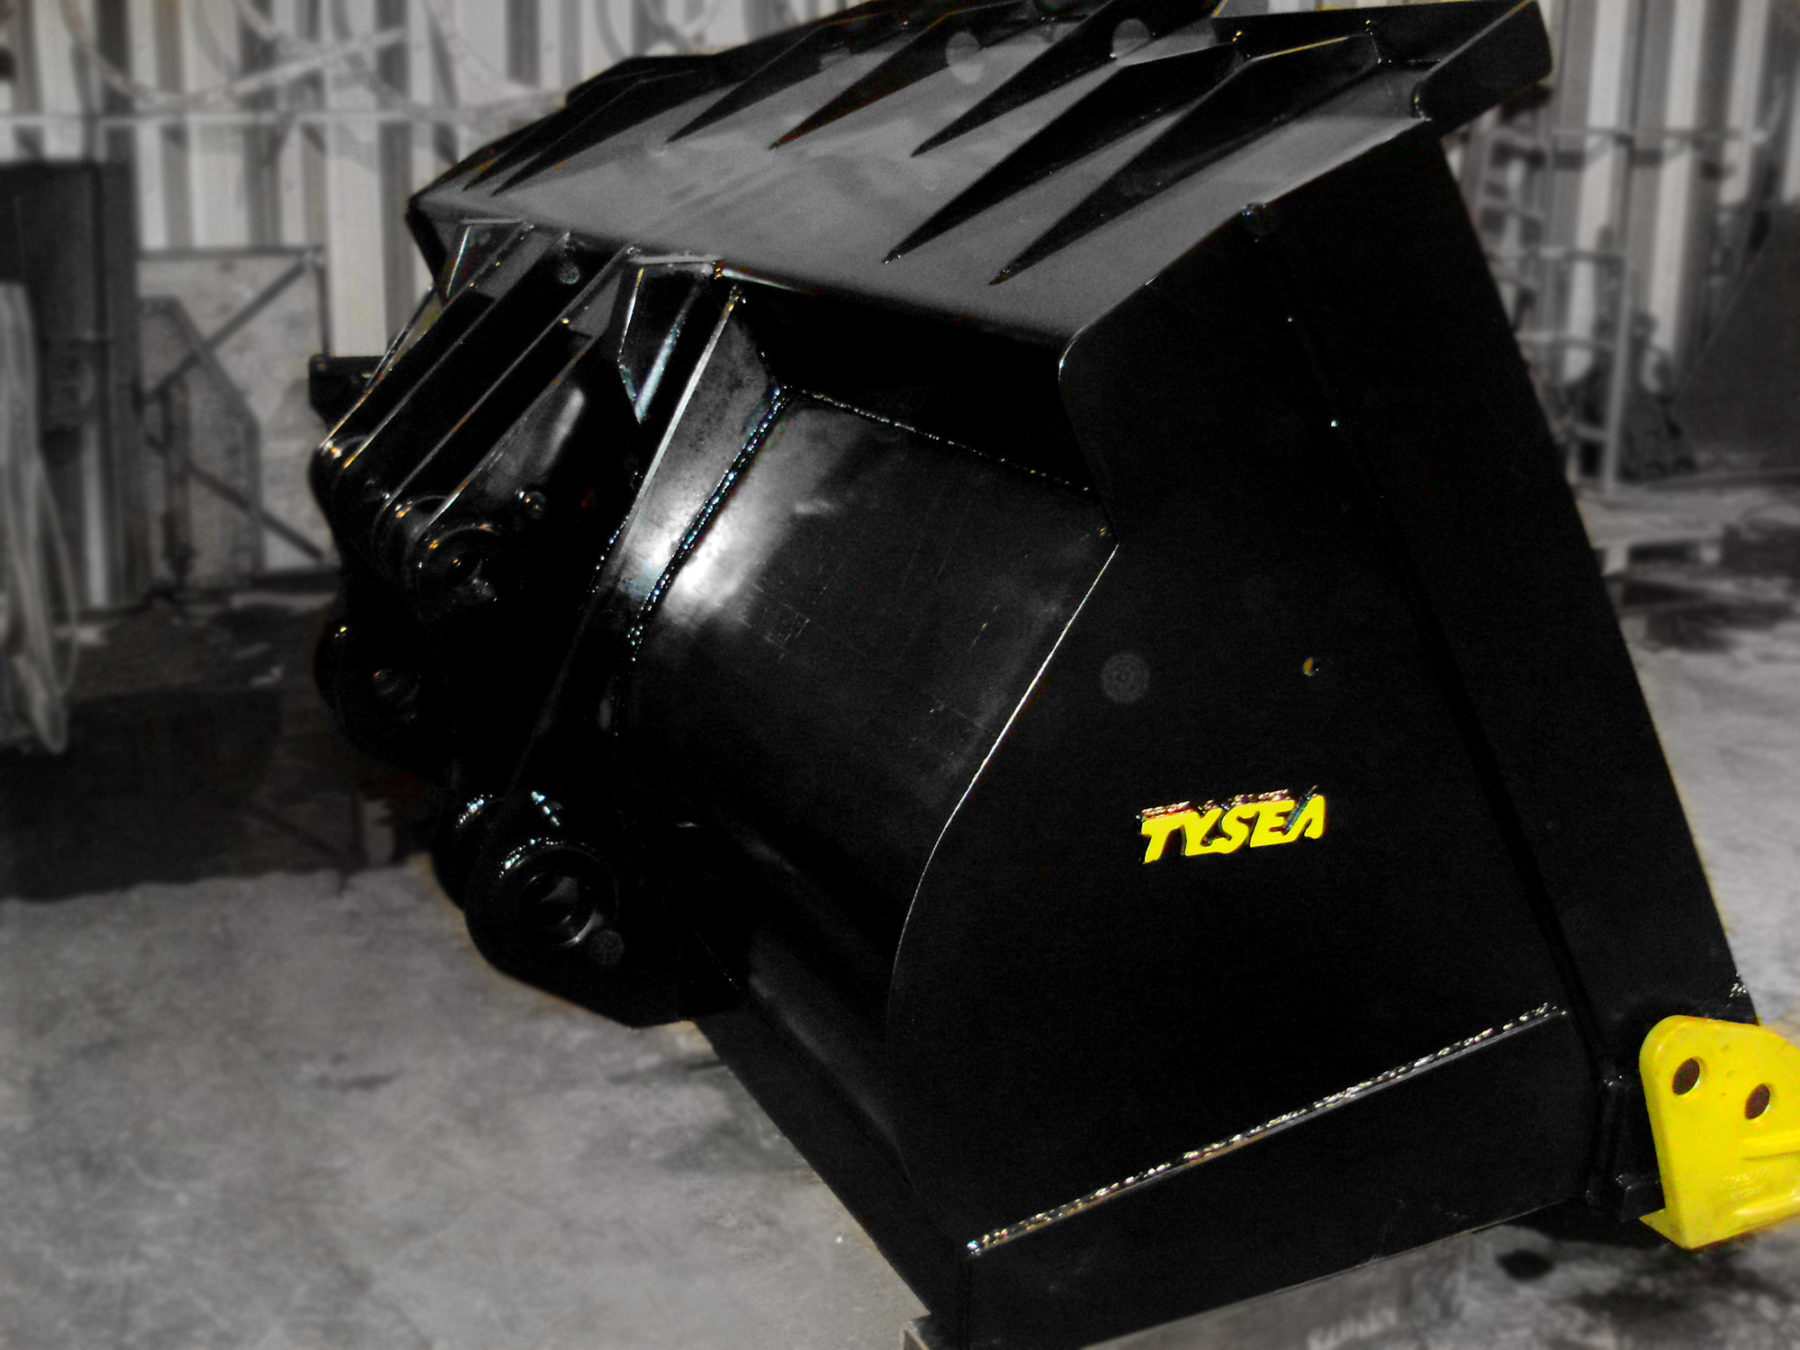 Heavy duty black and yellow wheel loader spade nose digging bucket manufactured by Tysea Mfg